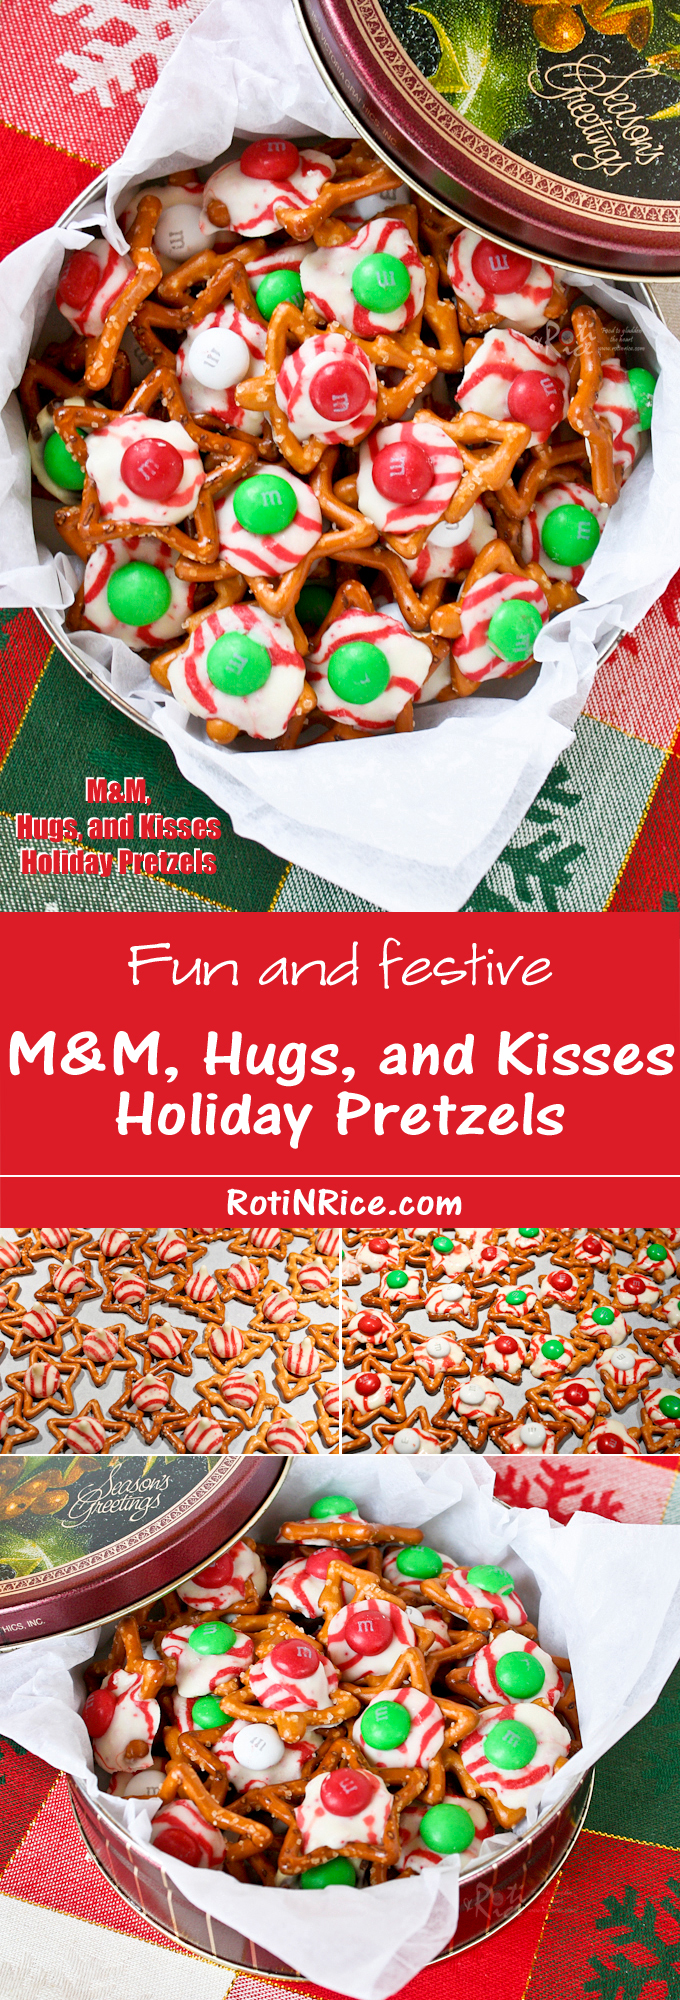 Fun, festive M&M, Hugs, and Kisses Holiday Pretzels with an irresistible sweet salty combination. Takes only minutes to prepare. | RotiNRice.com